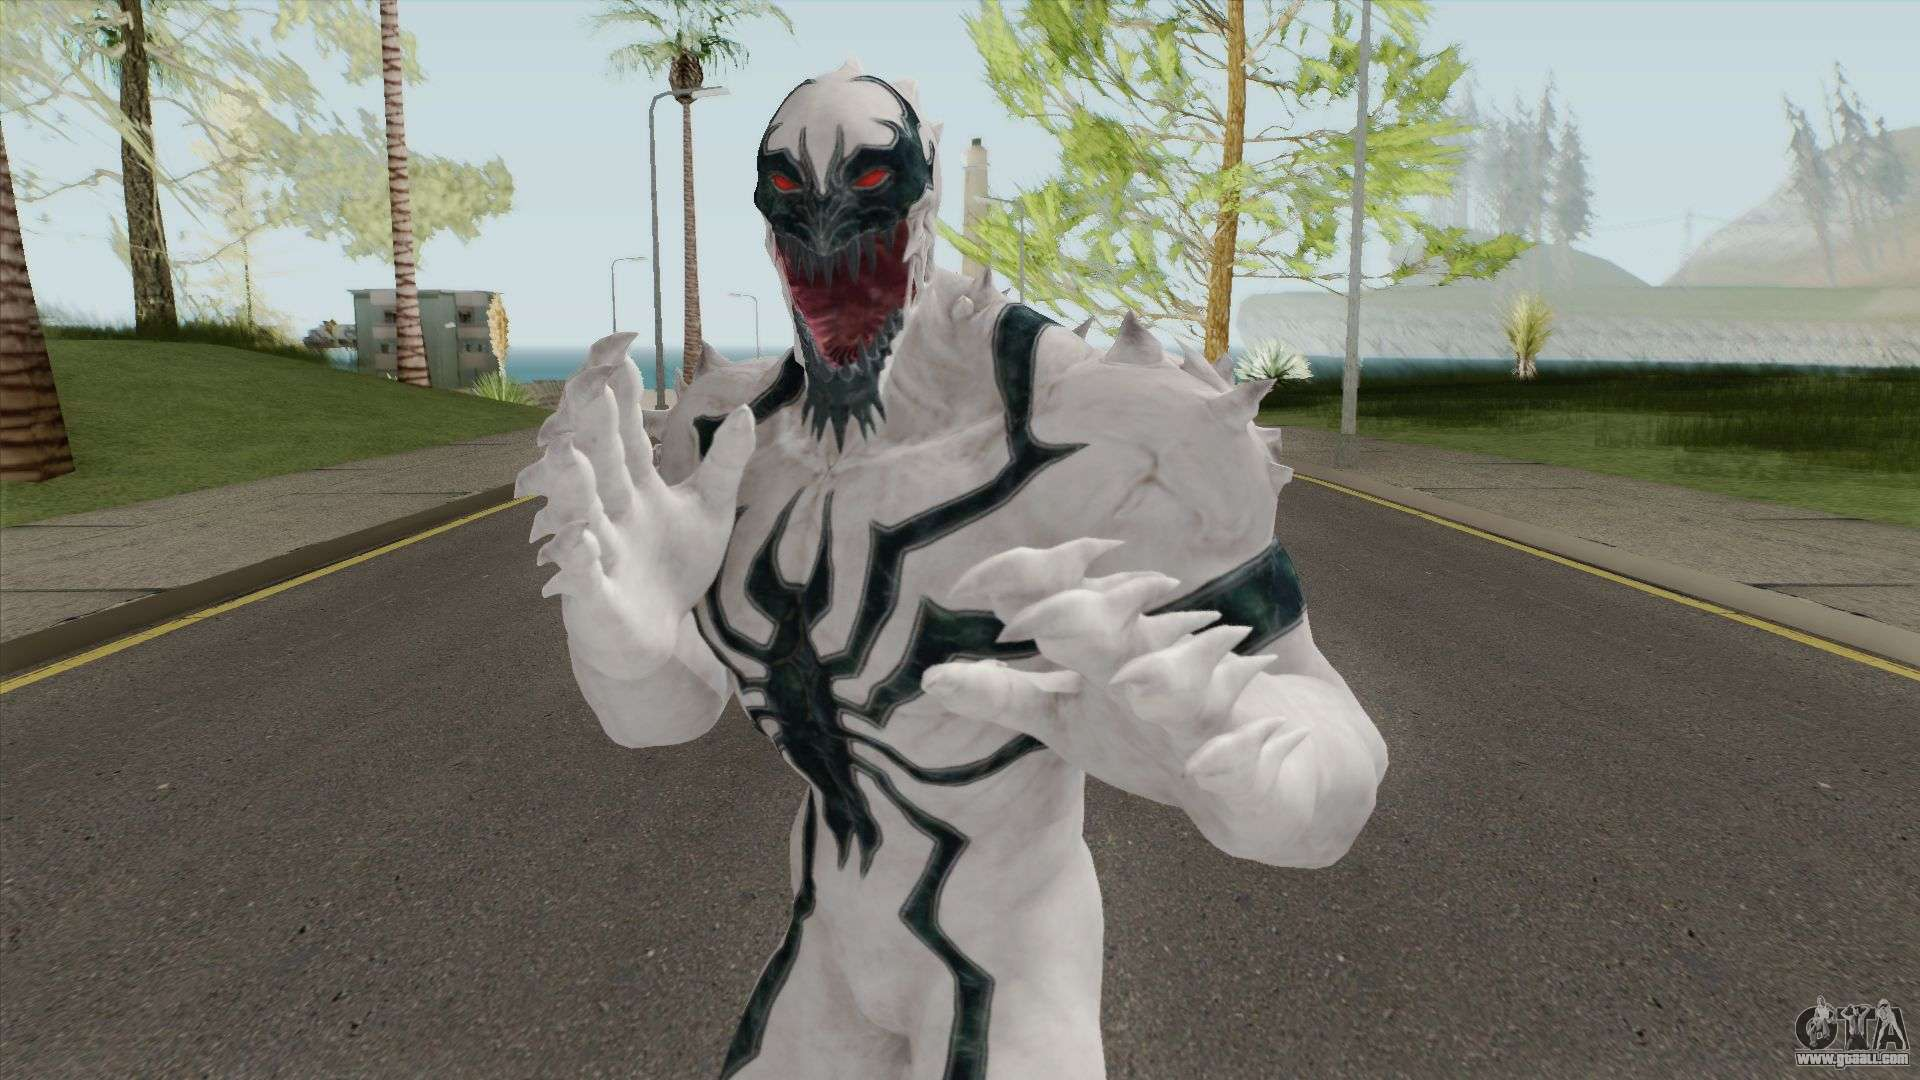 Gta 5 Venom Mod Free Download